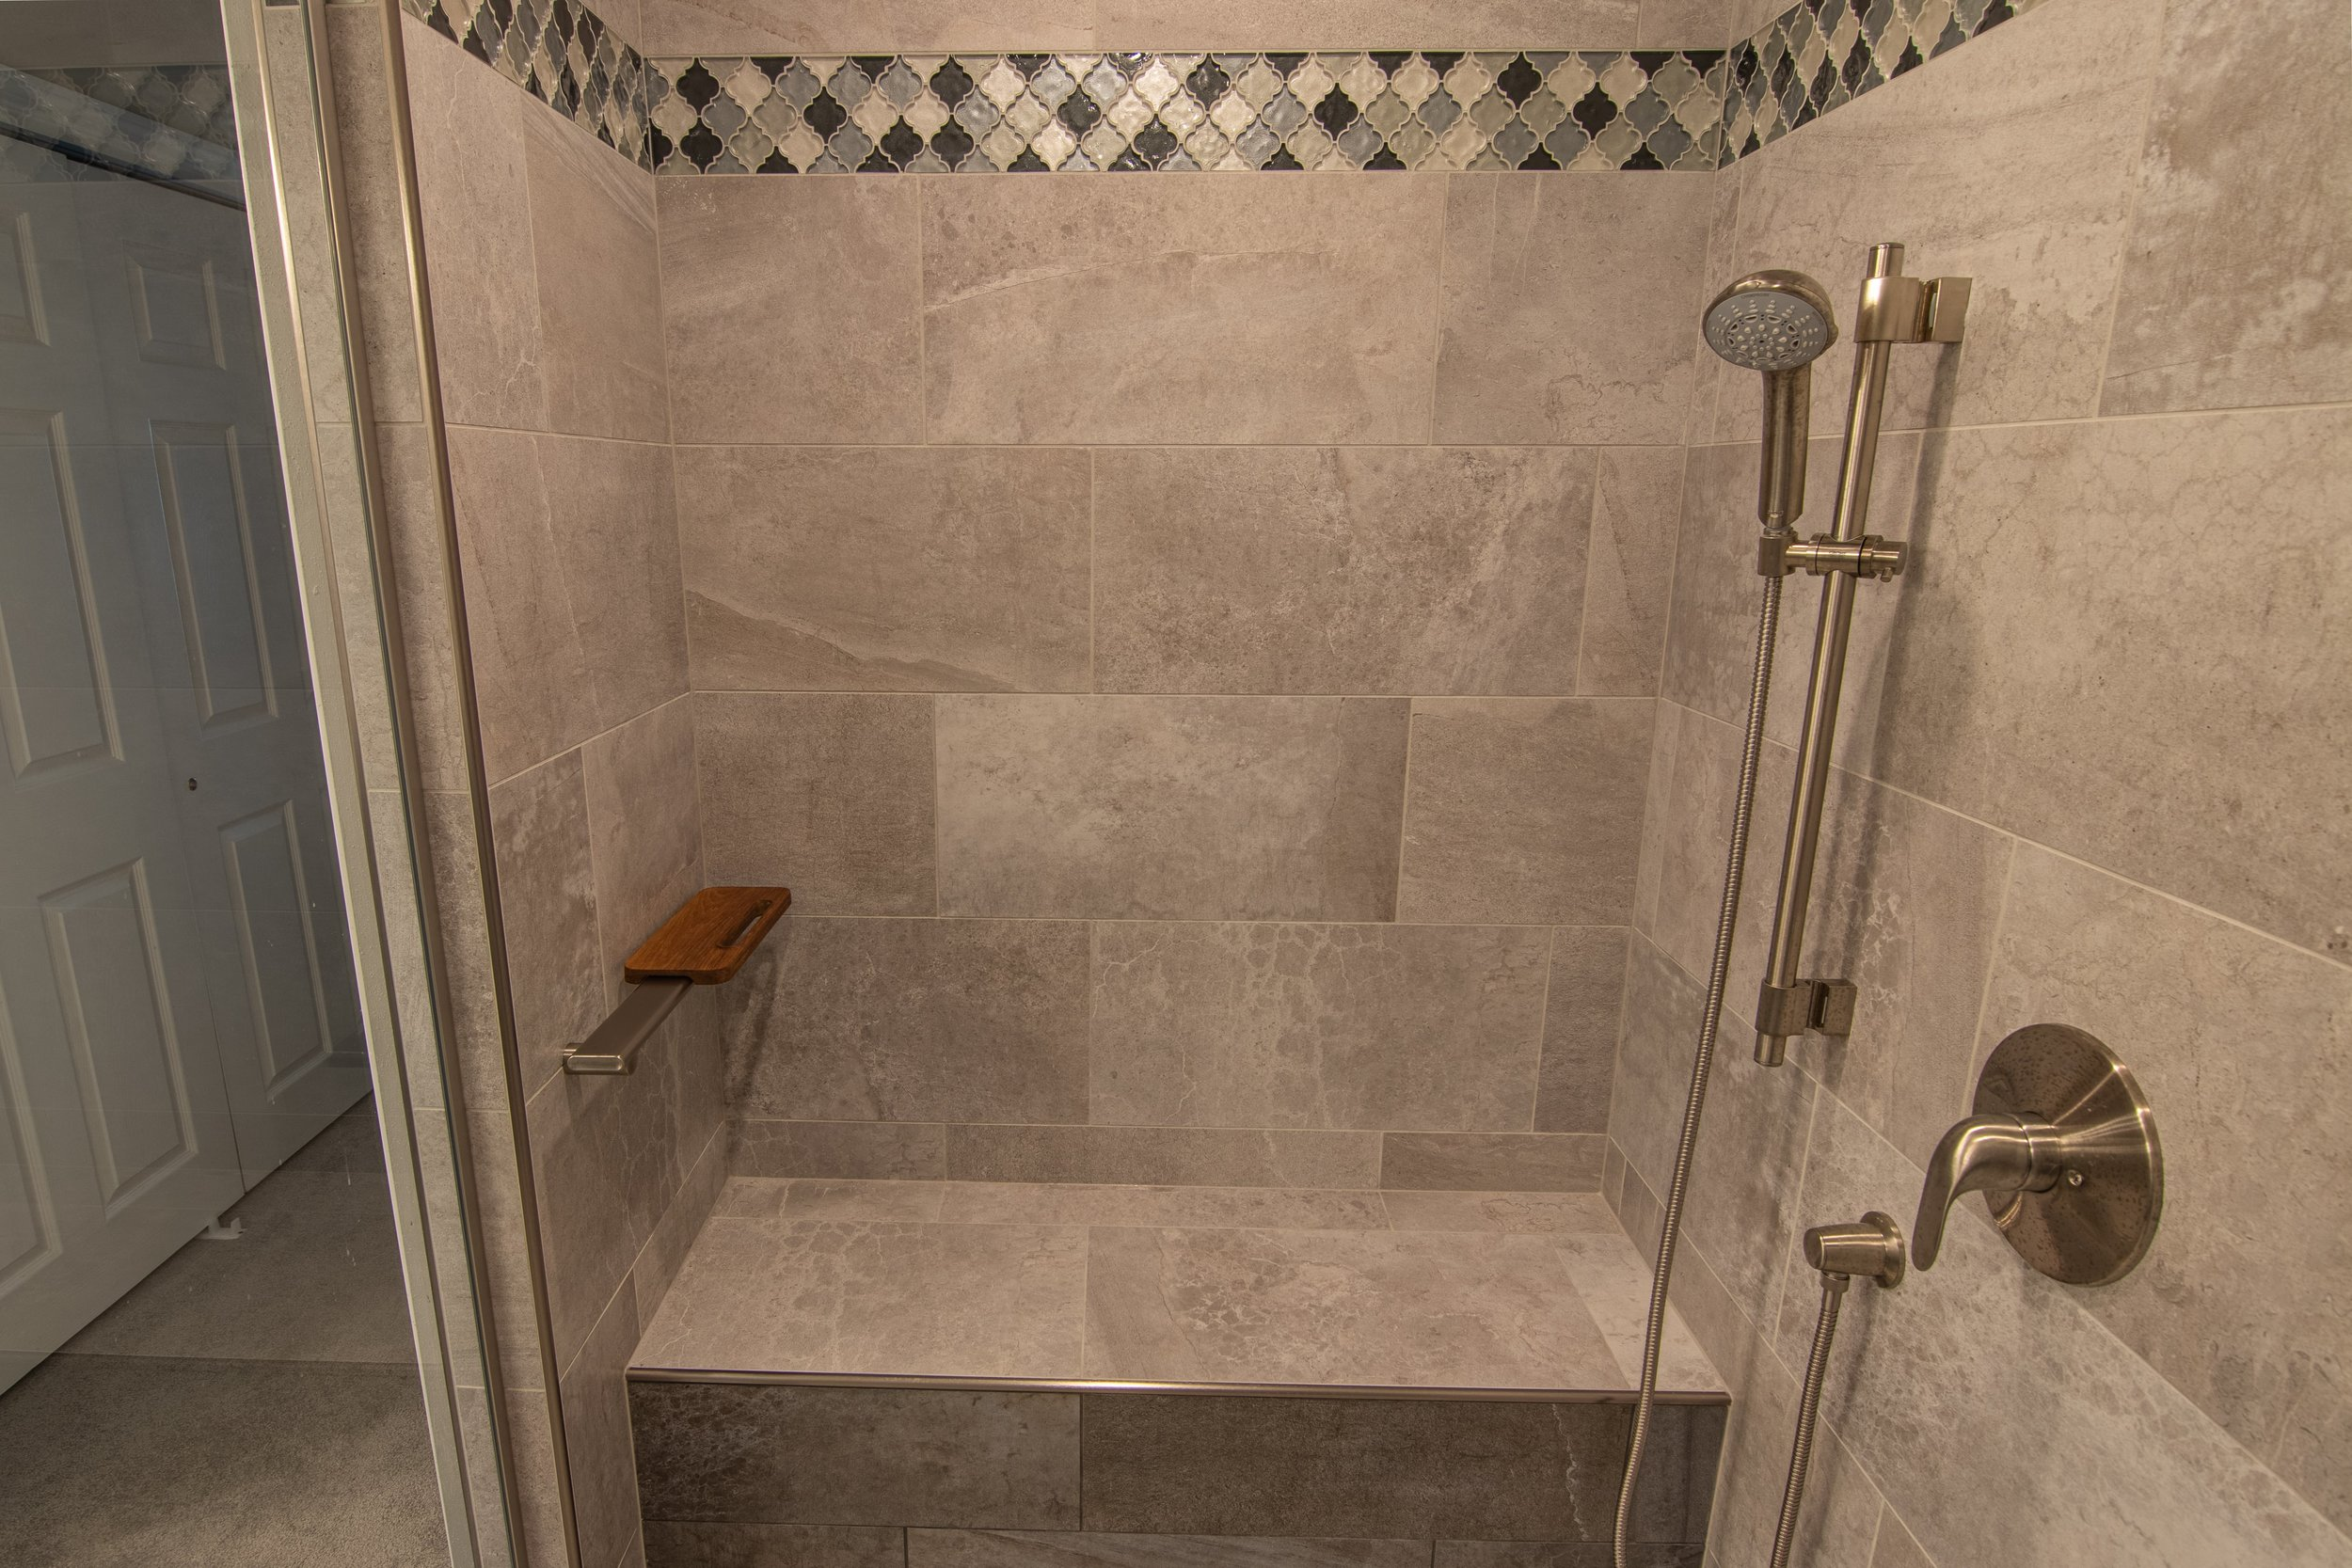 bathroom-remodel-renovate-monona-wi-7.jpg